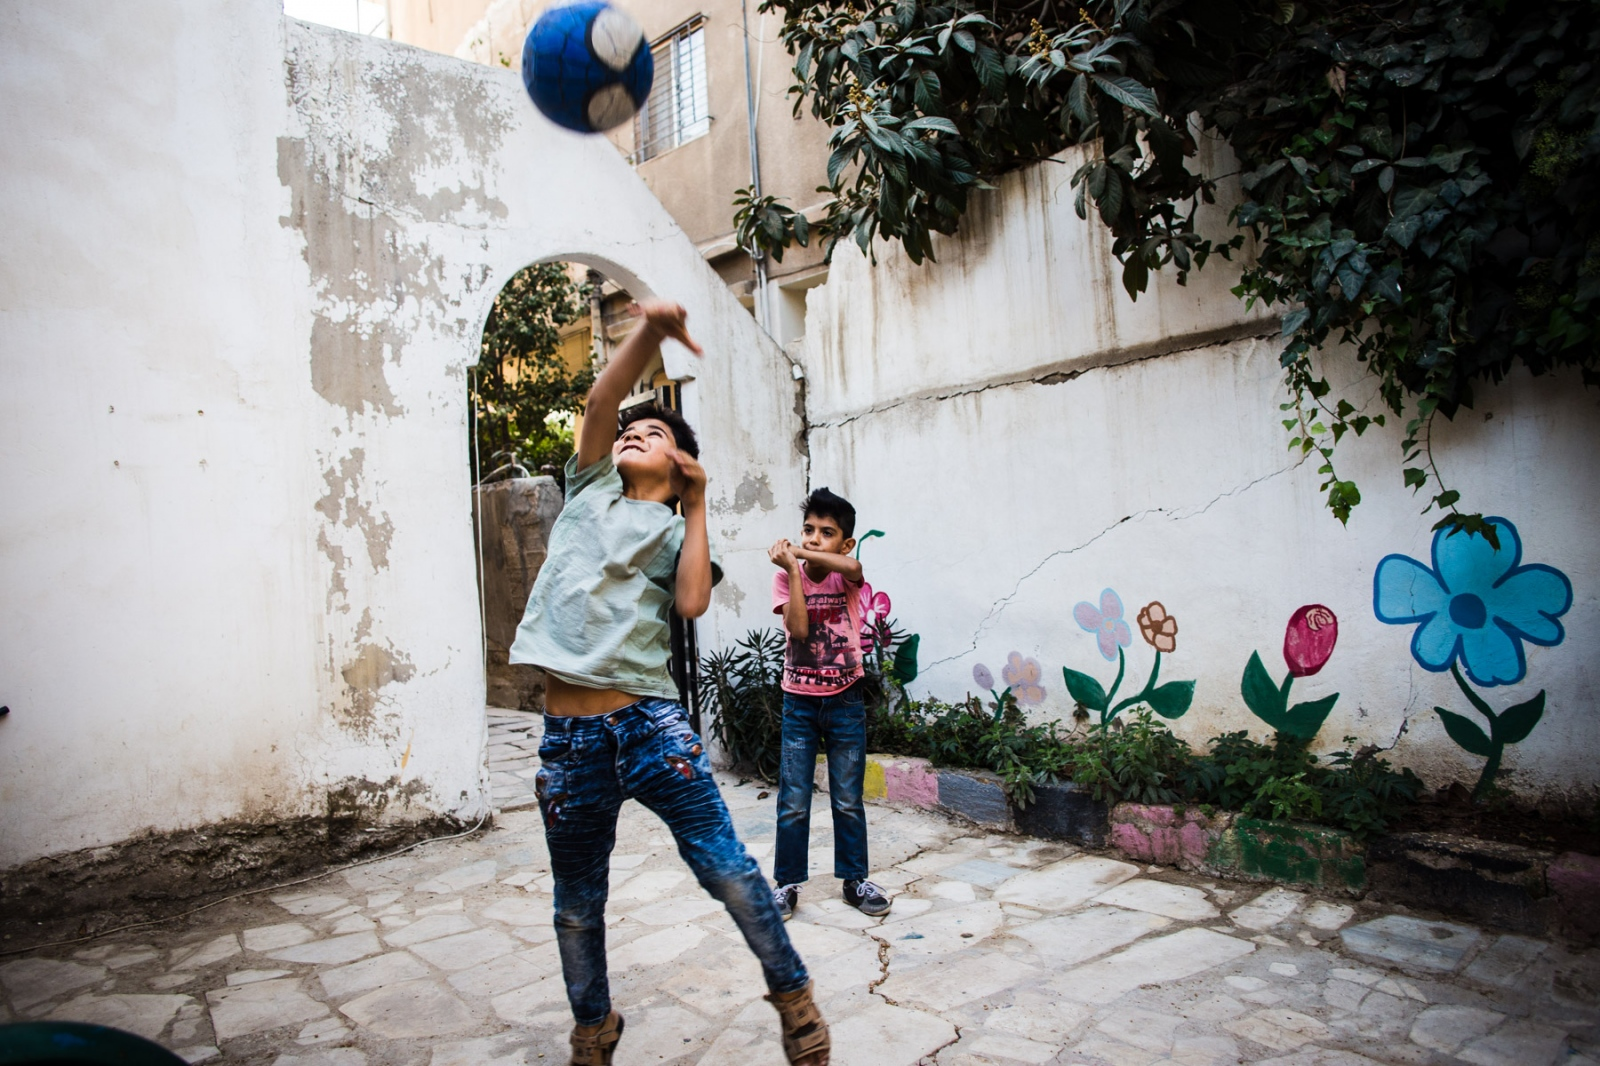 Two young Iraqi boys play with a ball in the playground area of Collateral Repair Project, a local NGO in Hashmi Shmali in East Amman.